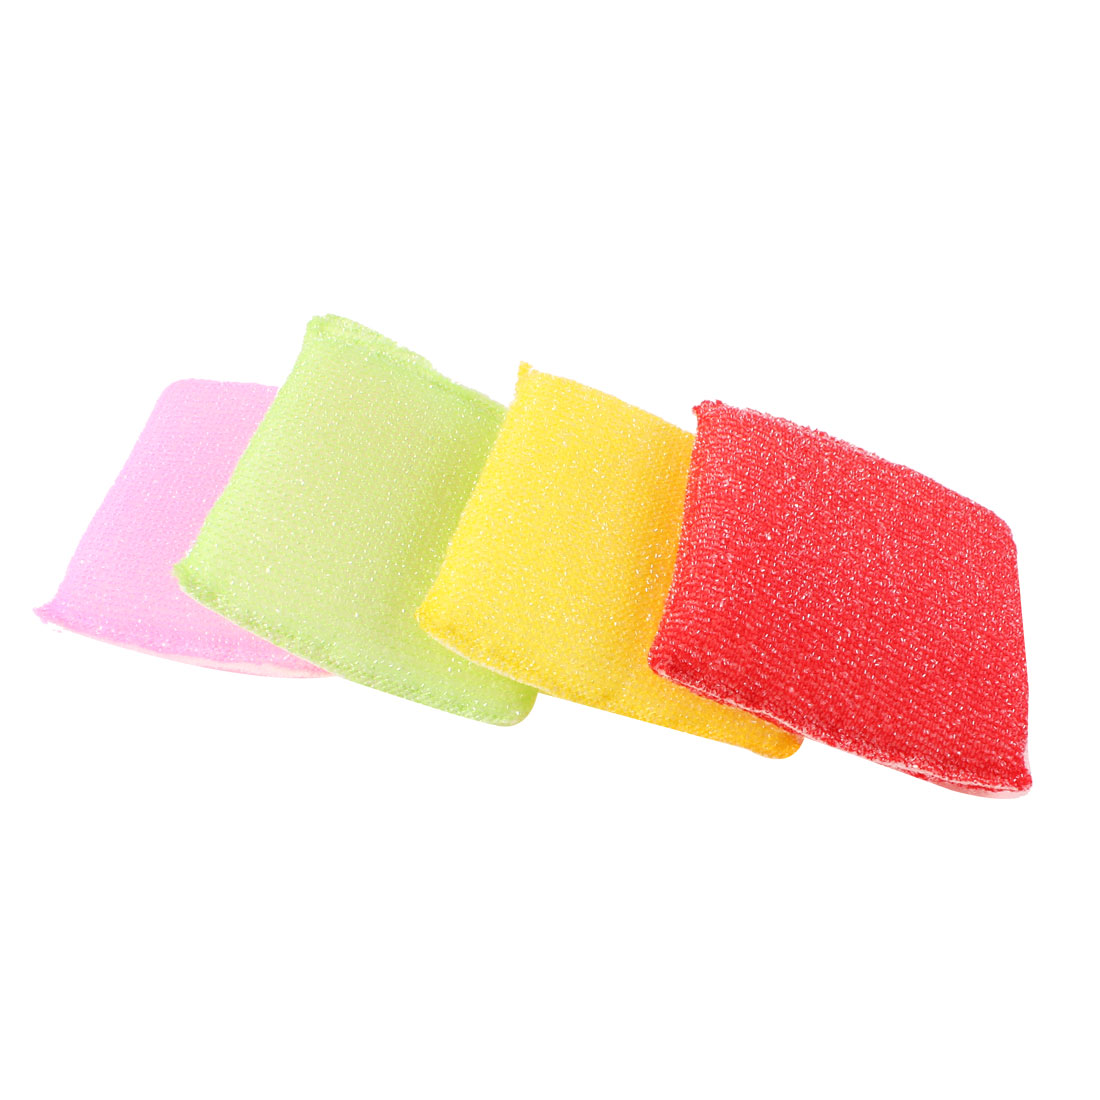 4 Pcs Four Colors Sponge Cleaning Water Absorbing Block for Kitchen